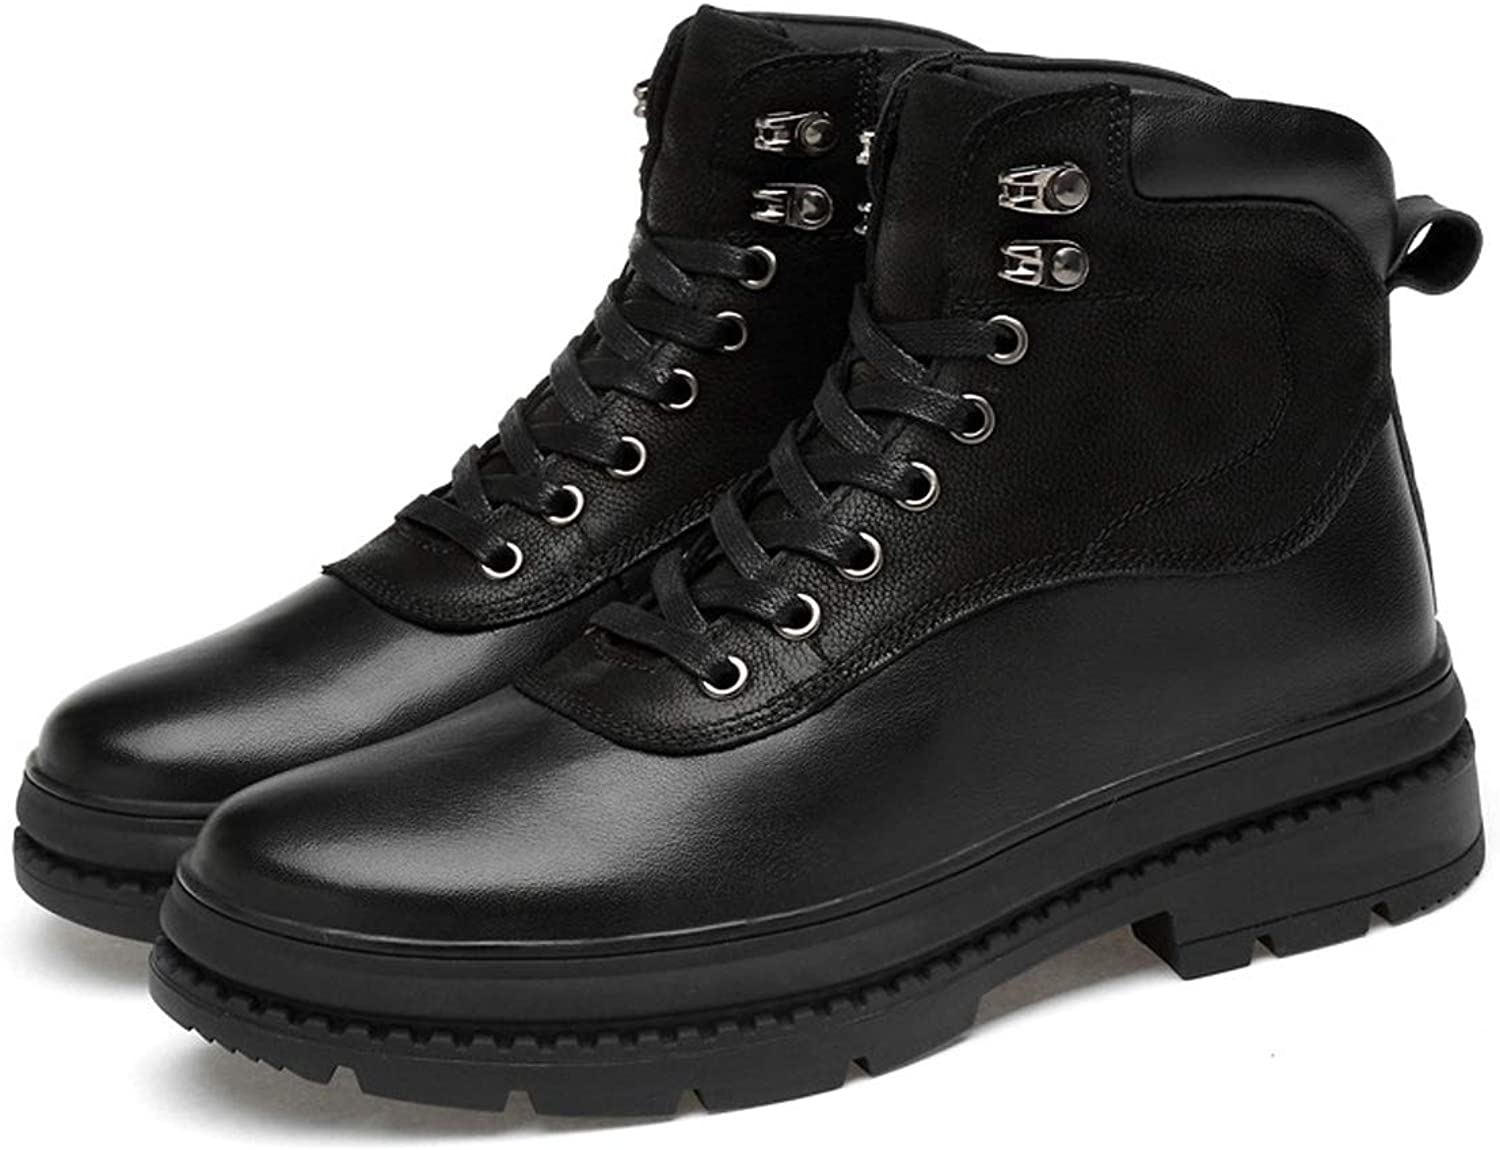 DANDANJIE Men's Martin Boots Fall Winter Warm High-top Leather Boots Lace Up Combat Boots Anti Slip Outdoor shoes